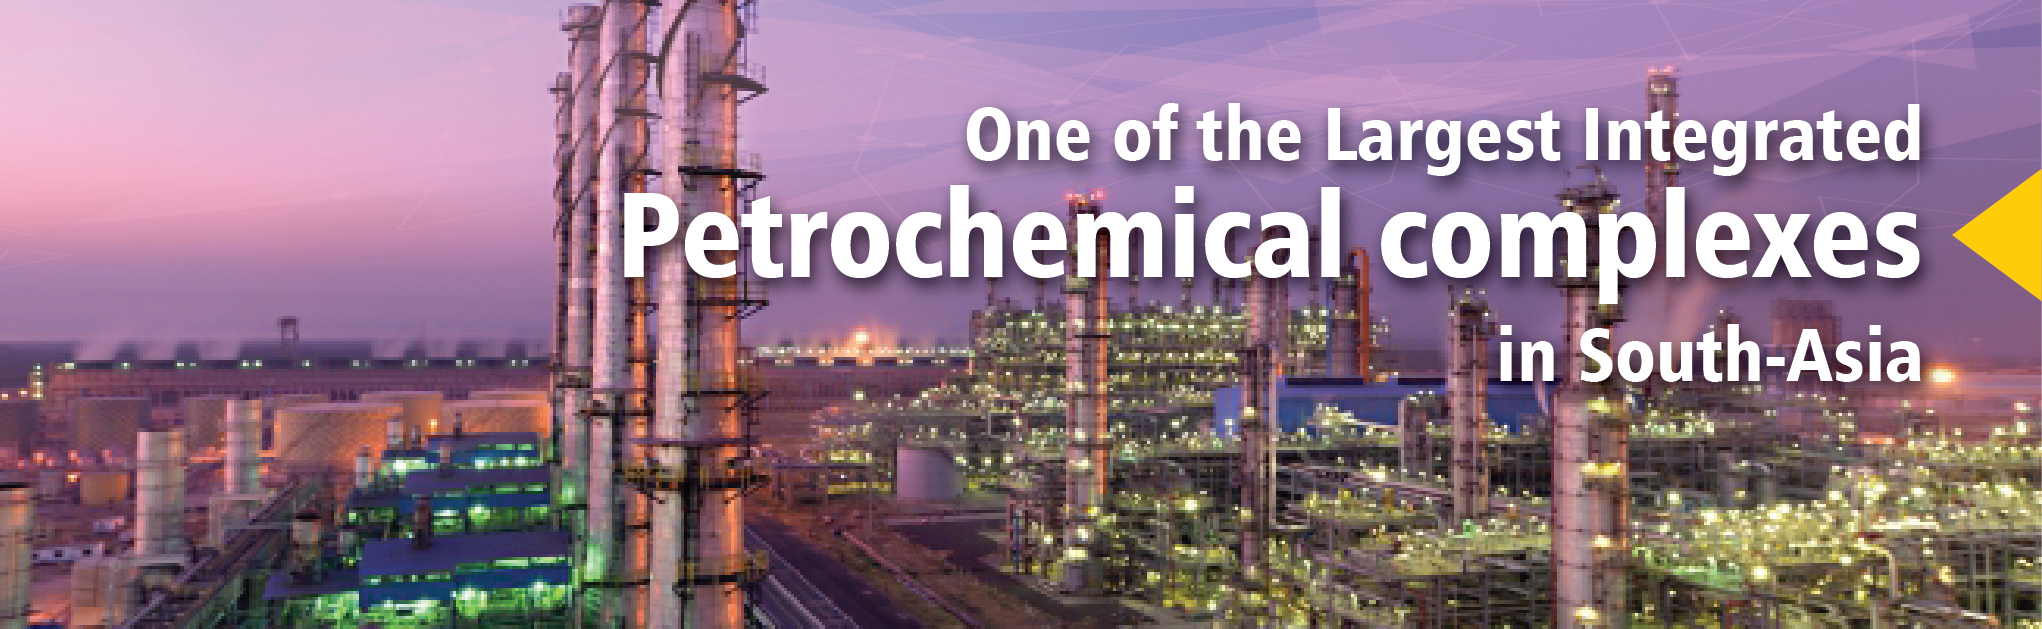 ONGC Petro additions Limited